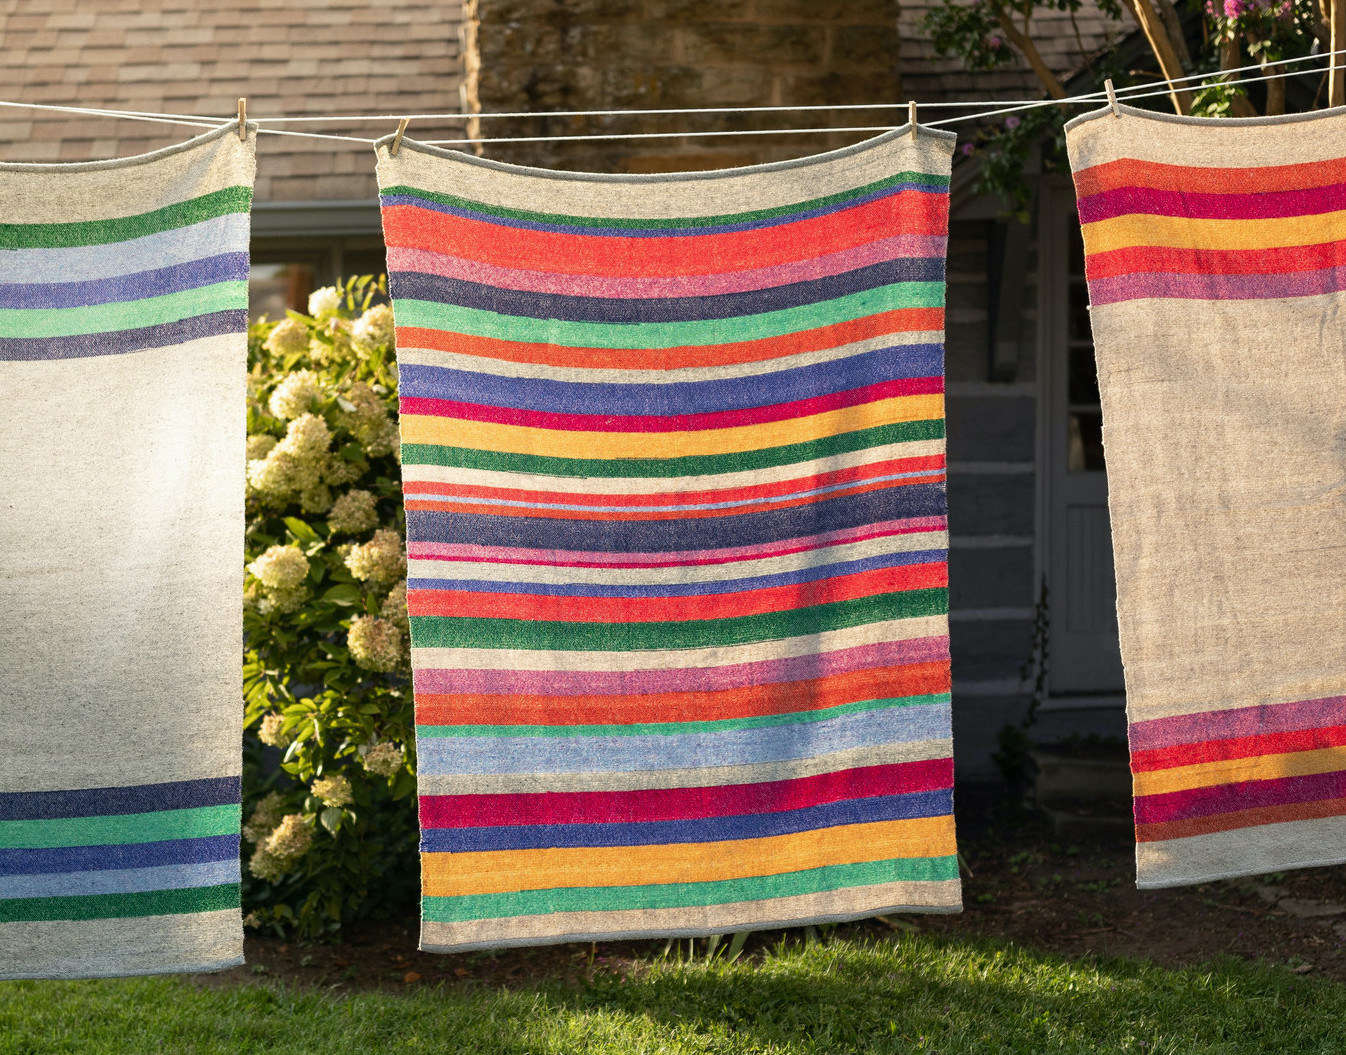 Back in July, we spotlighted the student-made Appalachian brooms and other designs from Berea College in Berea, Kentucky: see Crafts and Kinship. The school has recently begun rolling out some new work created under the mentorship of designer Stephen Burks. These handwoven wool and hemp throws, $0, come in three patterns, from left: Rise Throw Cool Colorway, Full Stripe, and Warm Colorway.